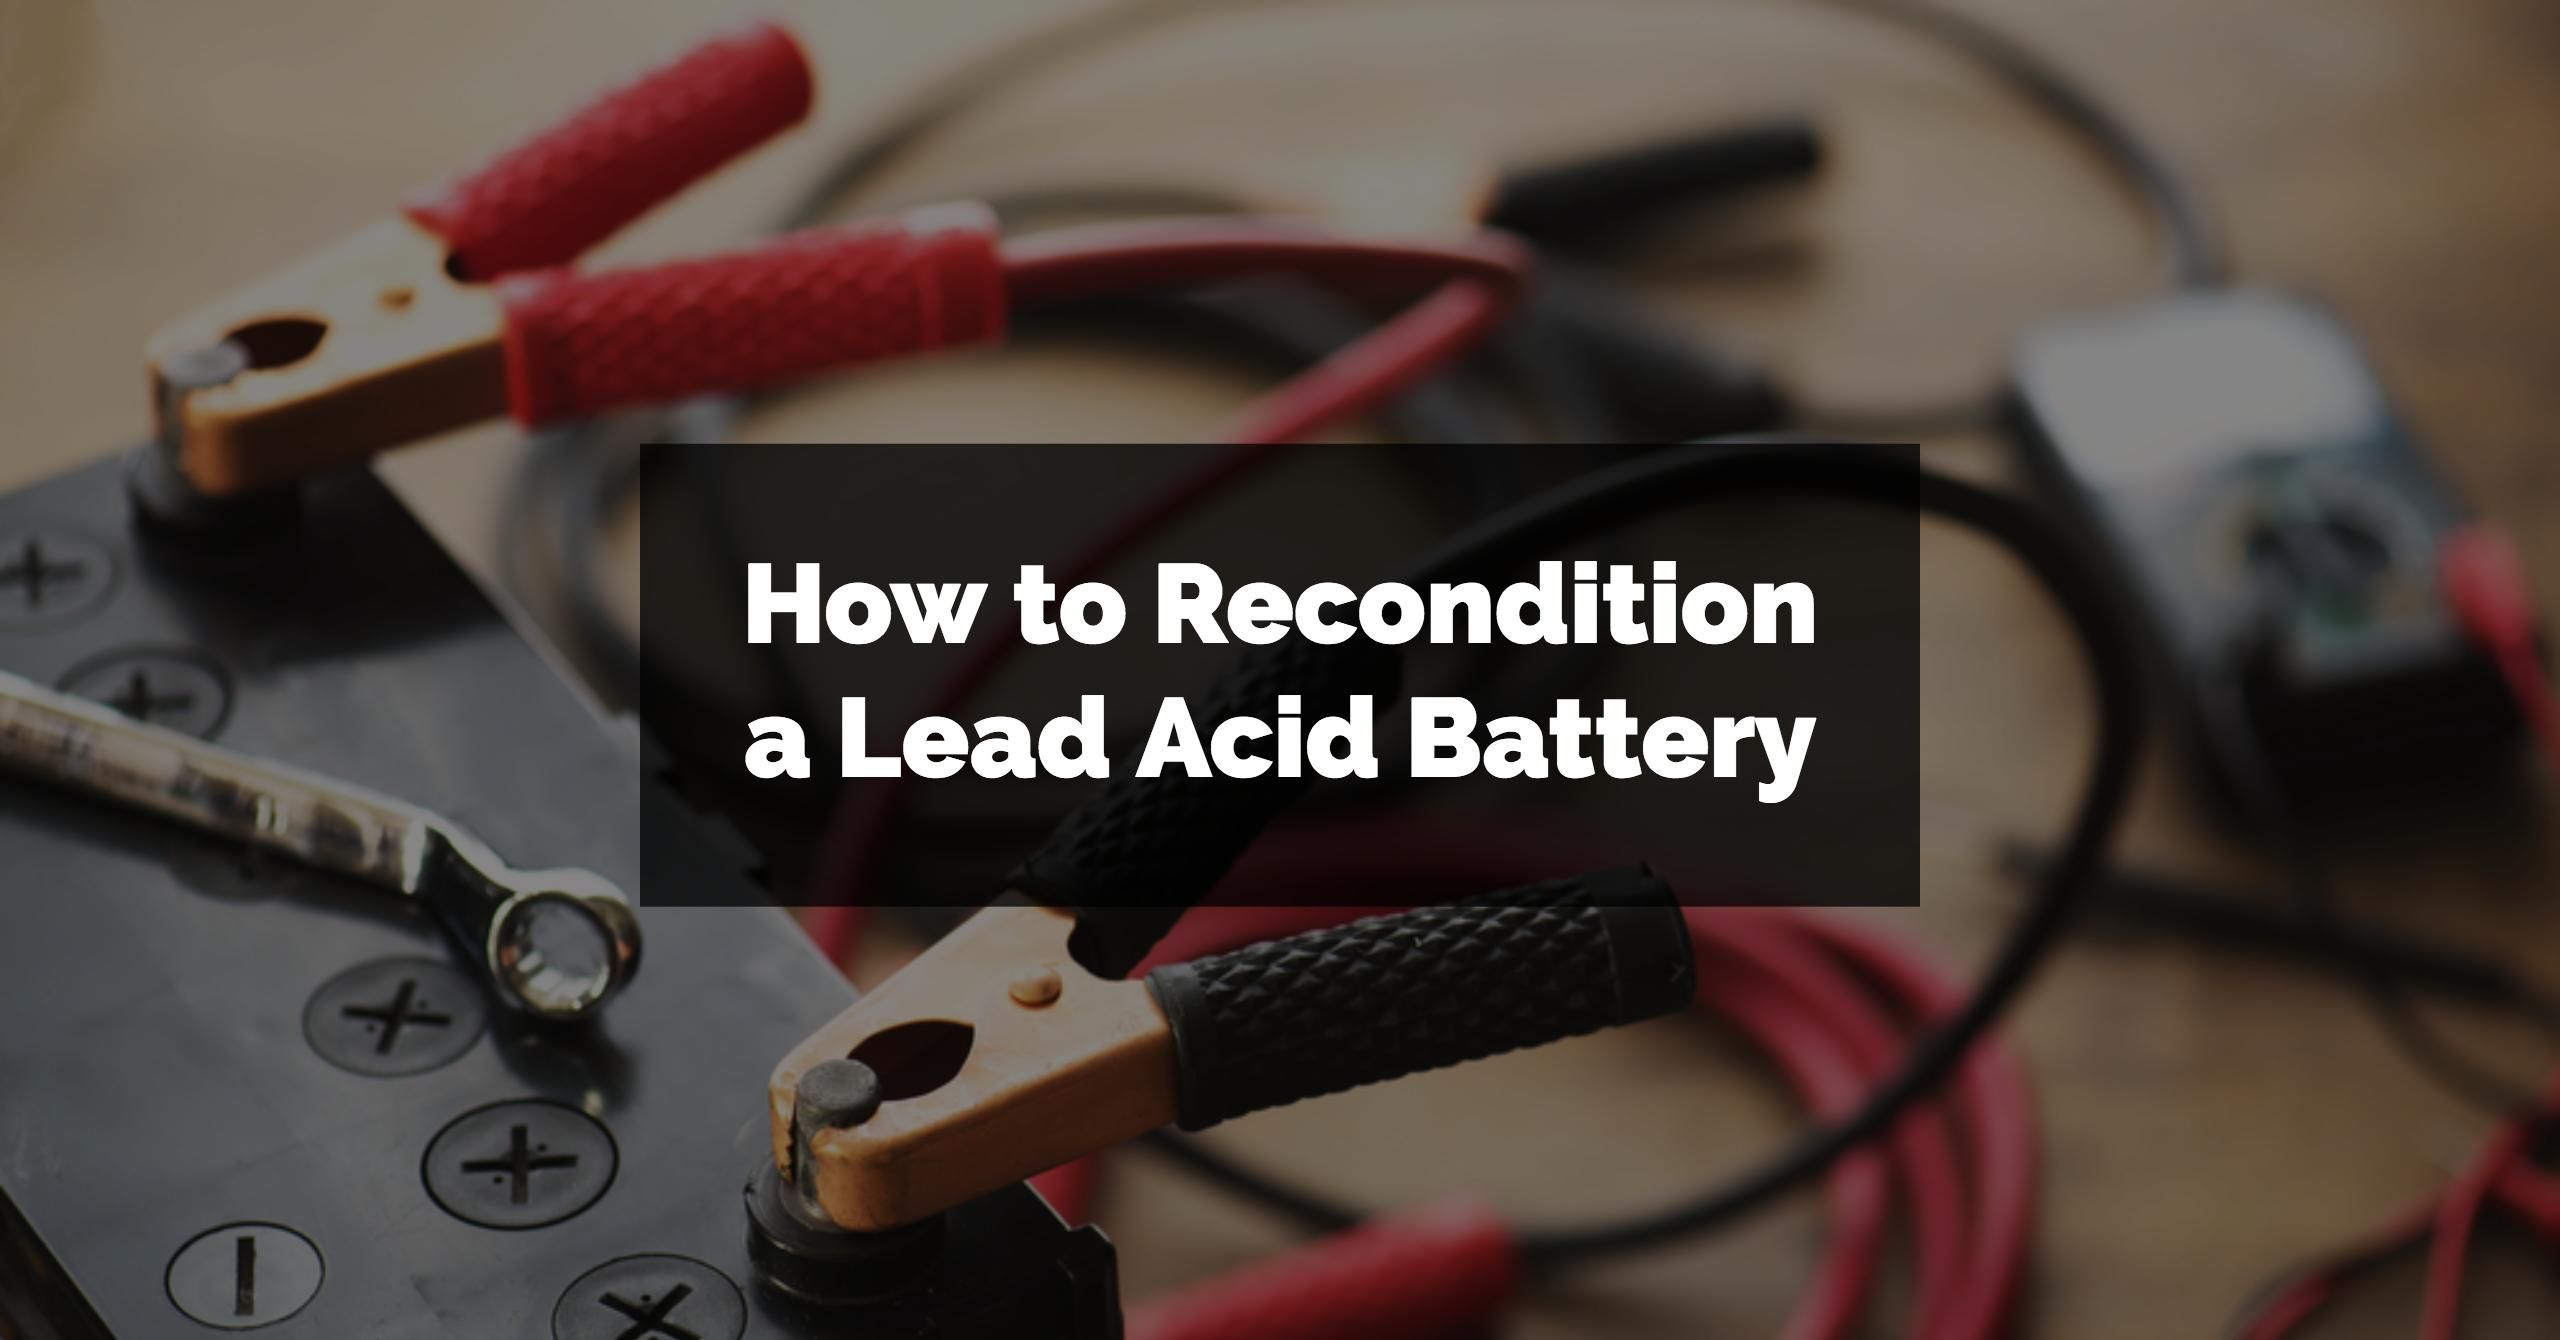 Pin on Recondition Batteries